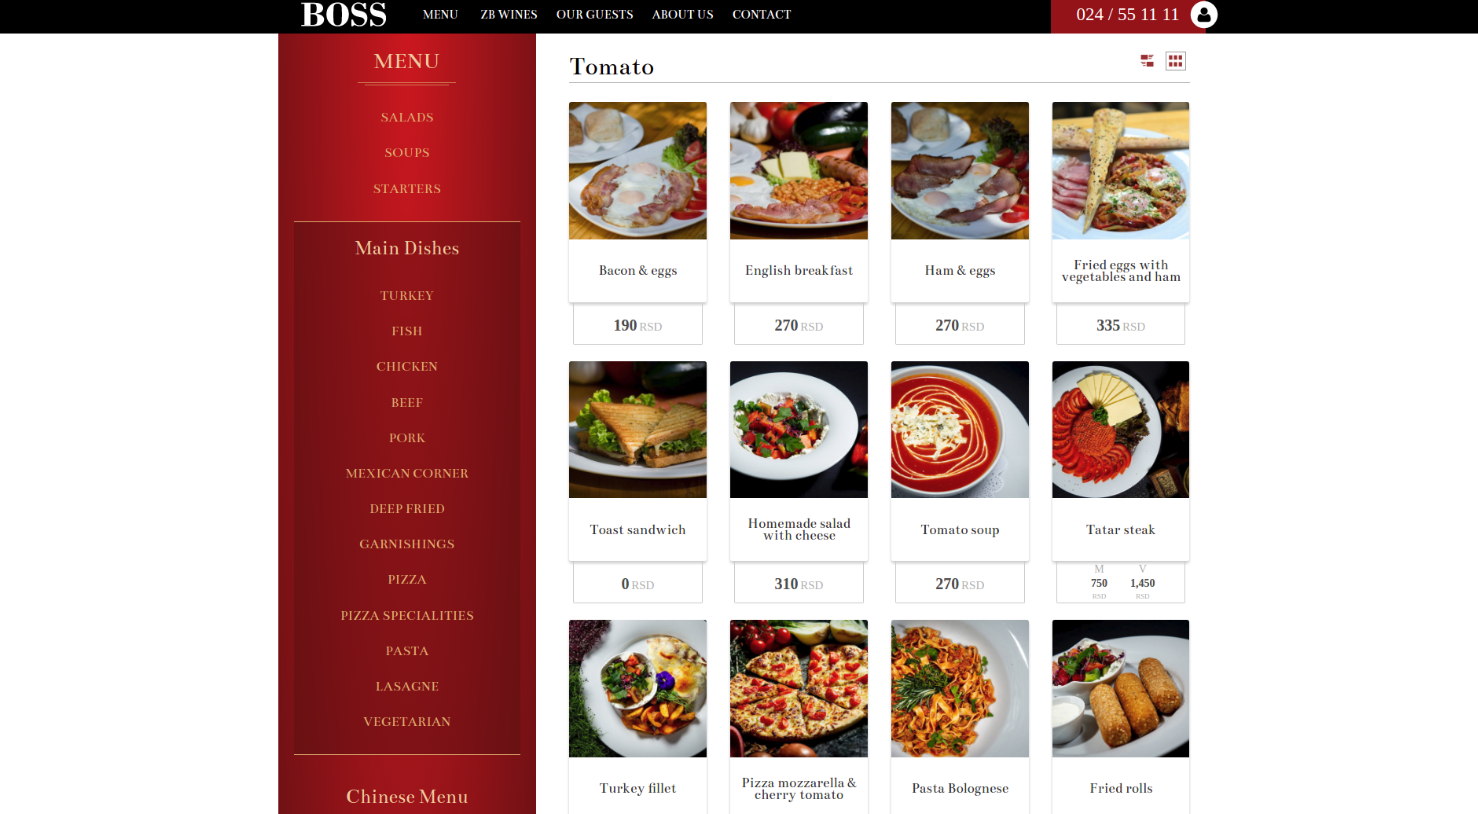 The Boss Cafe website